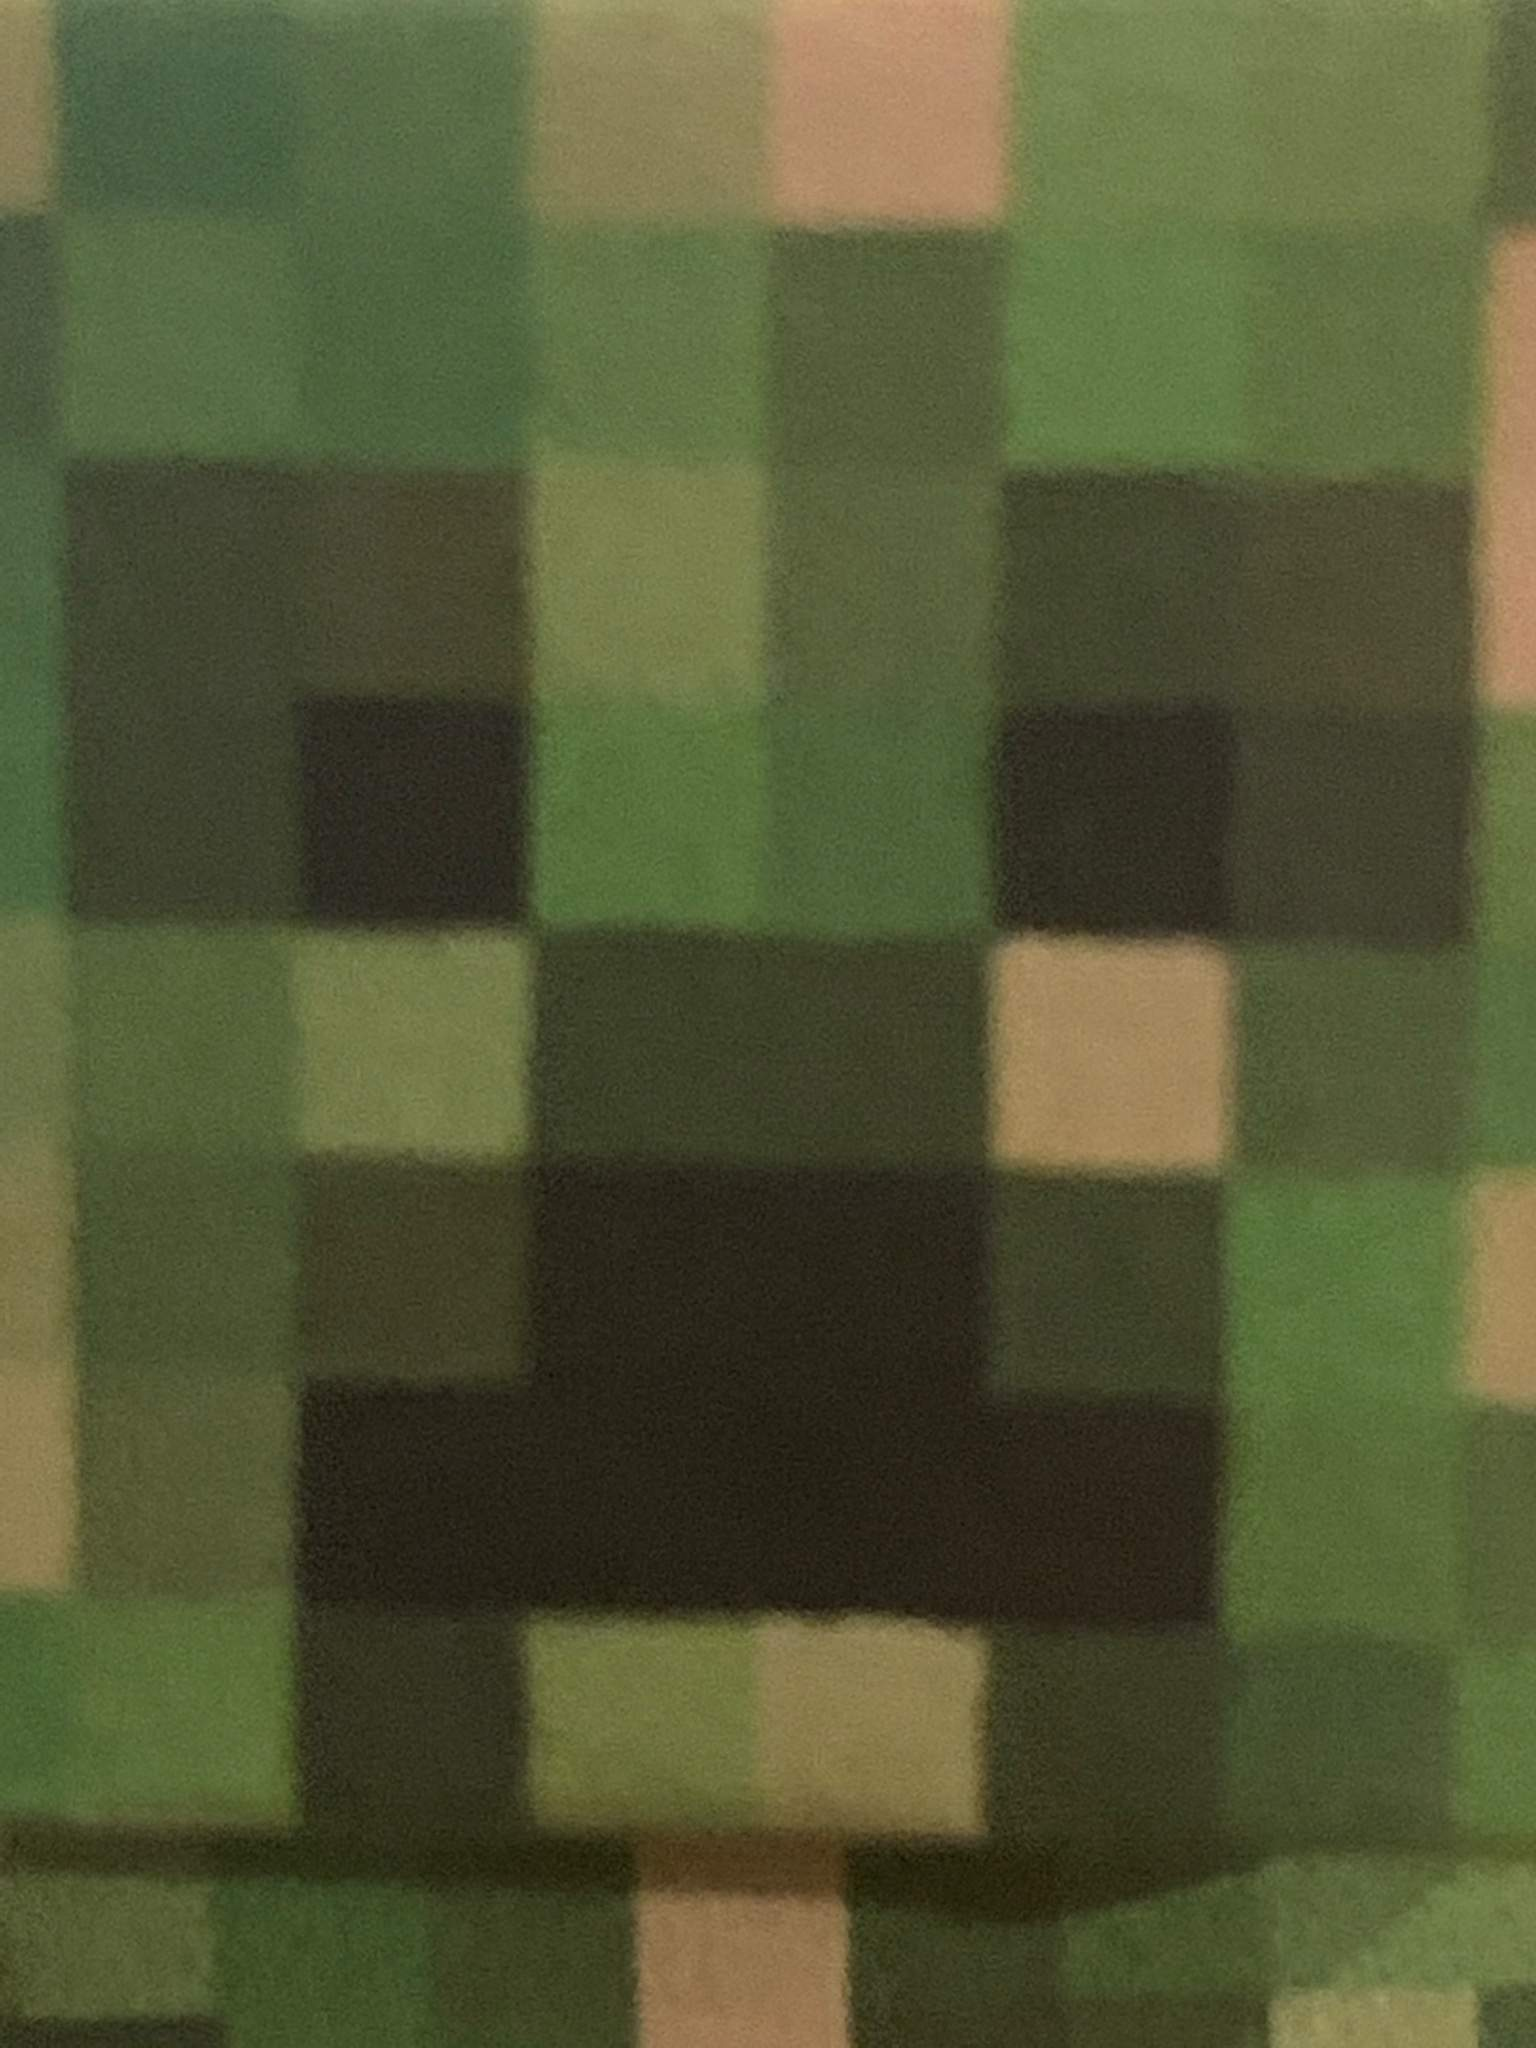 How To Make A Papercraft Creeper From Minecraft | Creeper ... | 2048x1536